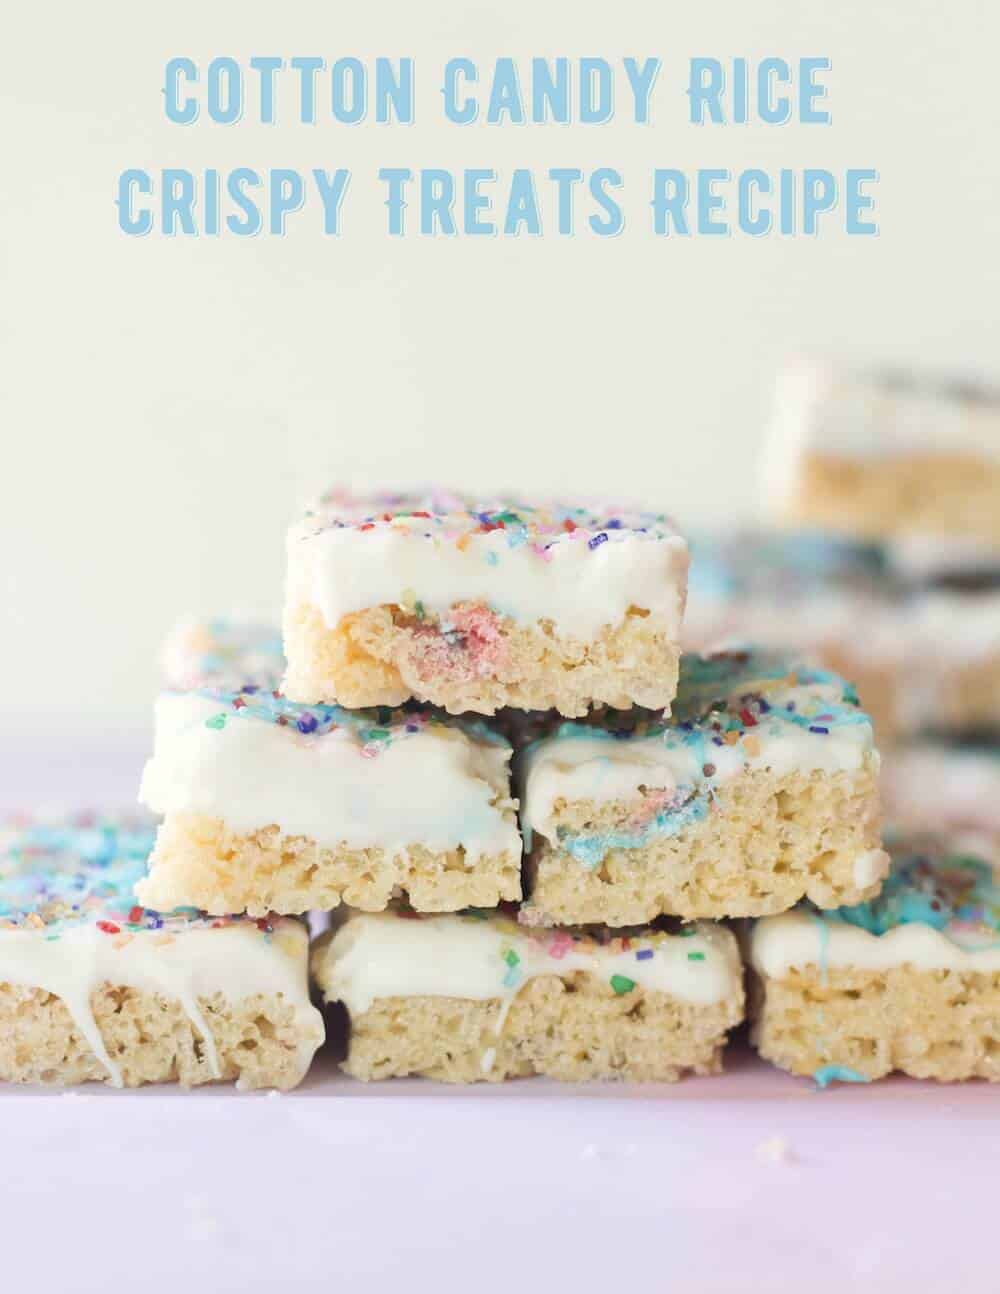 This treat takes your standard rice crispy treats recipe up a notch! Add cotton candy and a few other ingredients for the ultimate dessert bar.